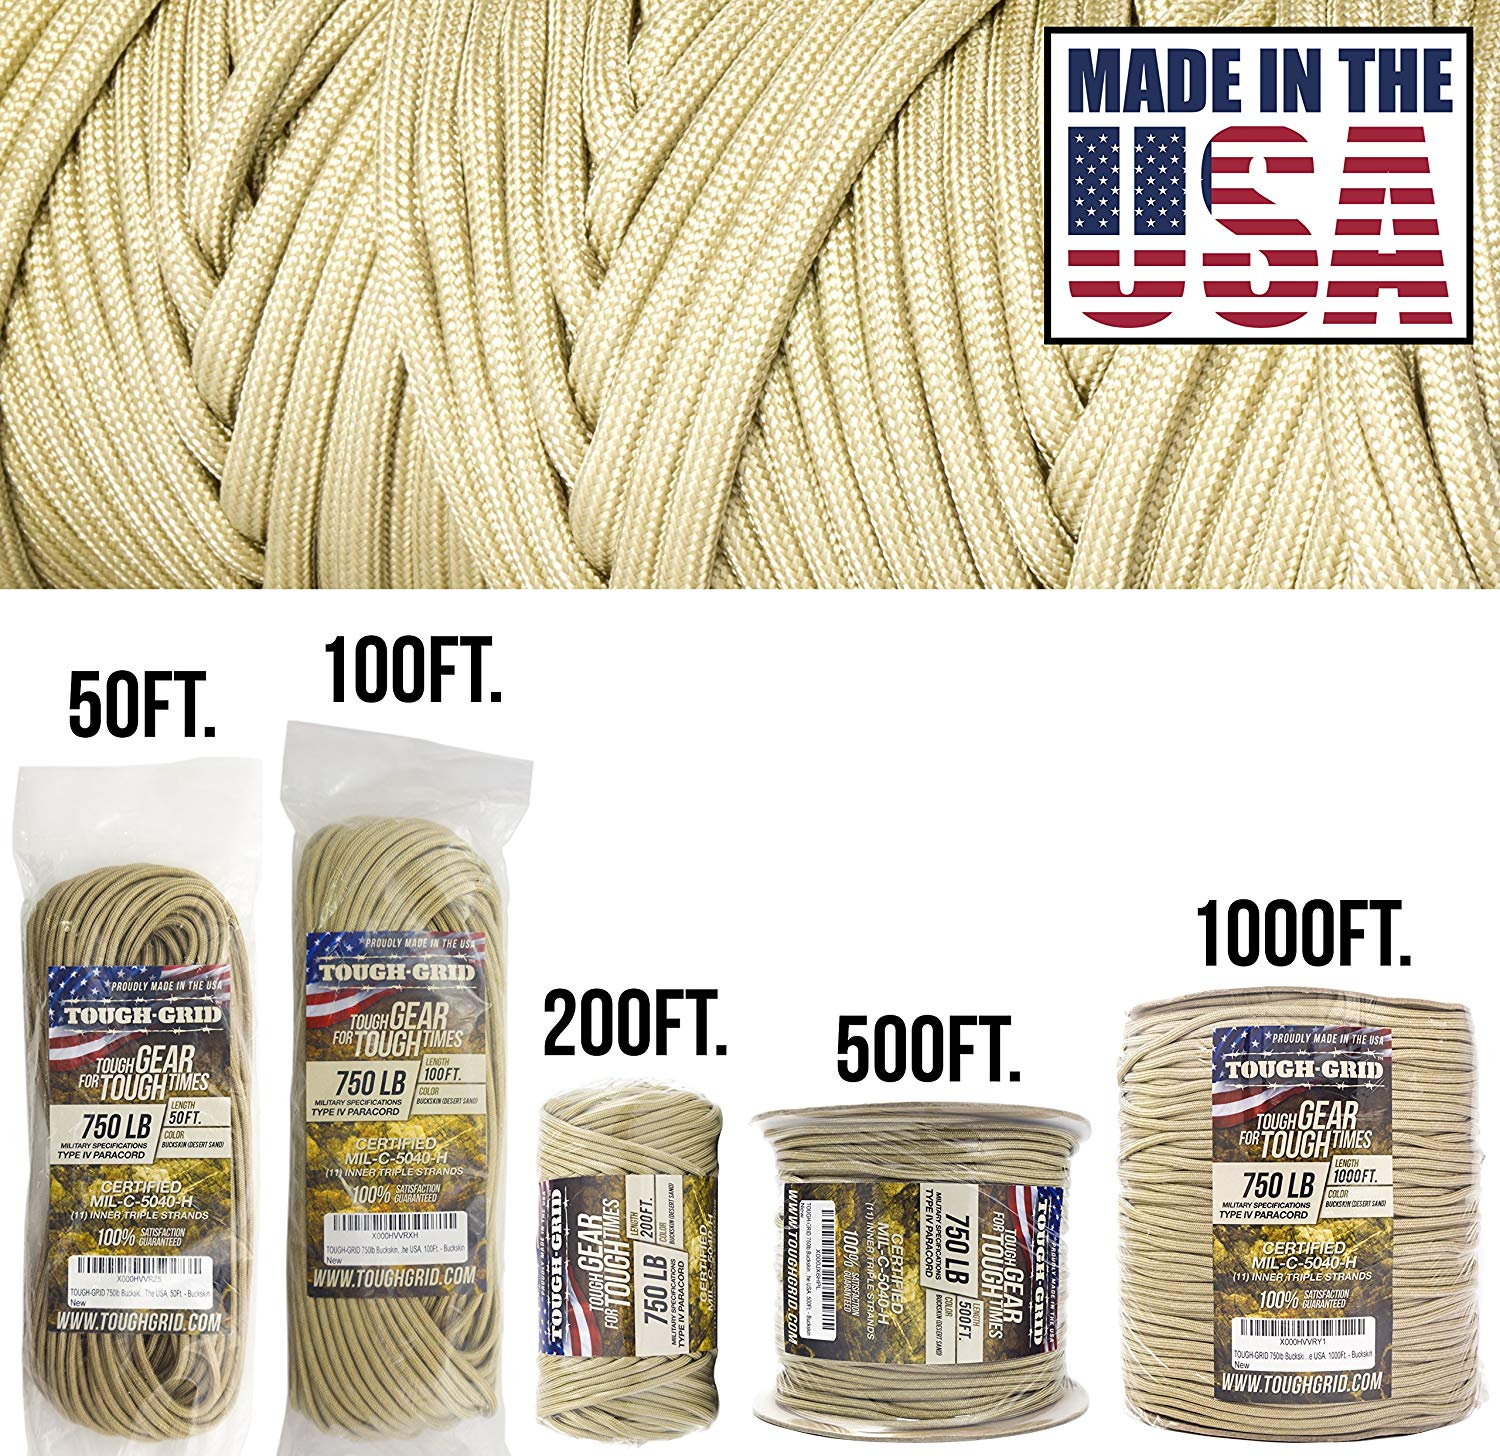 Genuine Mil Spec Type IV 750lb Paracord Used by US Military Safety - Neon - 100/% Nylon TOUGH-GRID 750lb Neon Safety Orange Orange Paracord//Parachute Cord 200Ft MIl-C-5040-H